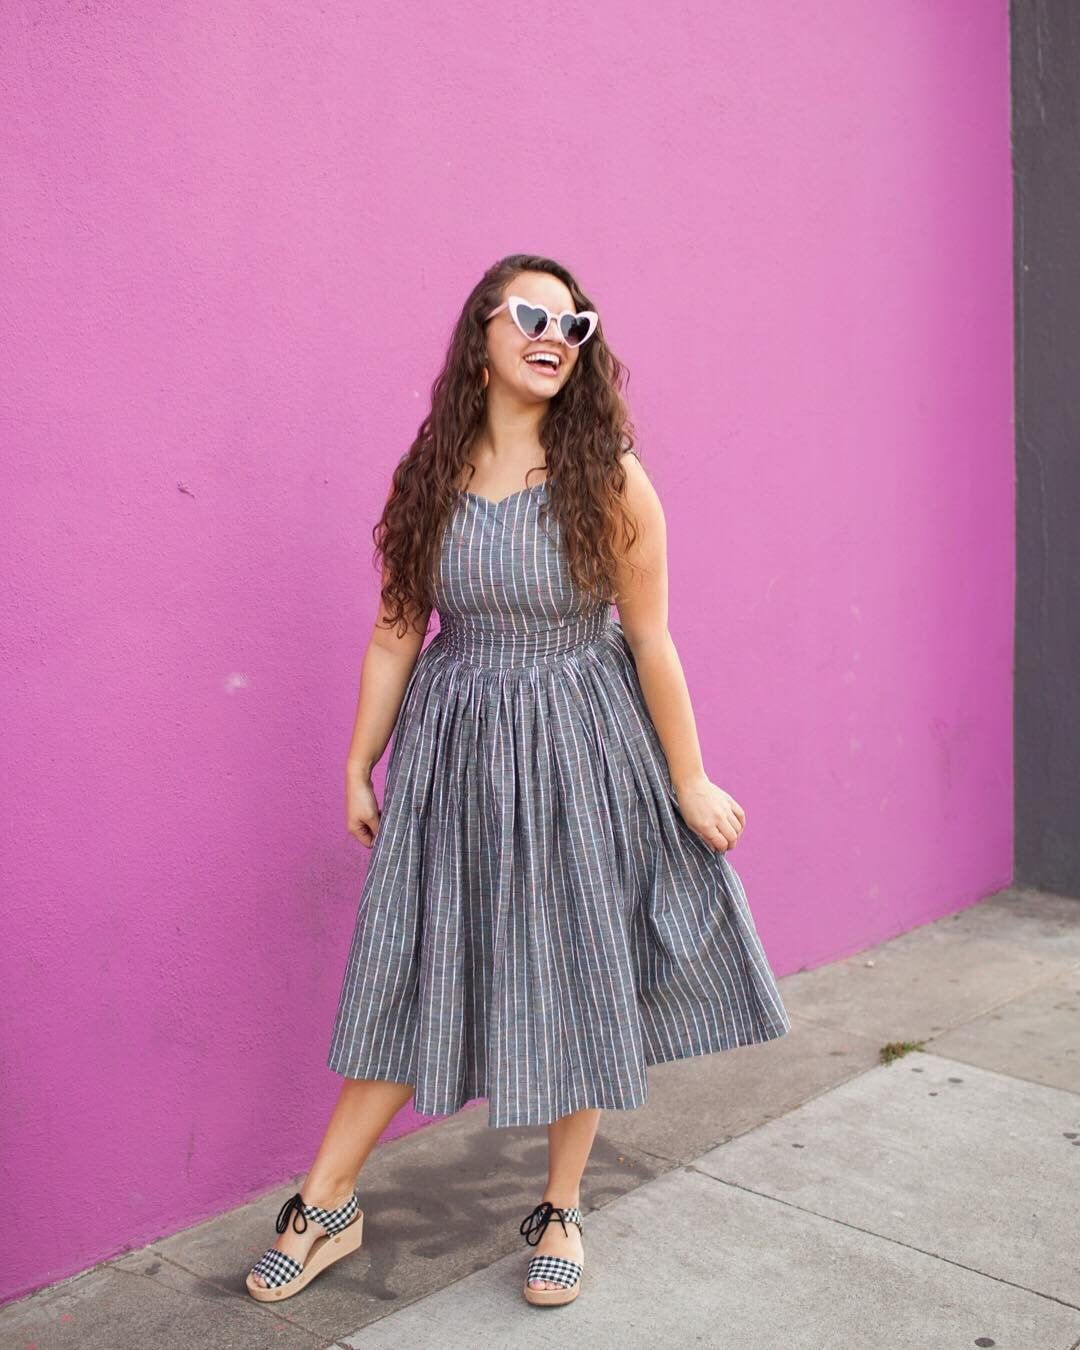 Fabulous Fit And Flare Dress With Pockets In Grey Plaid Fit And Flare Dress Short Girl Fashion Flare Dress